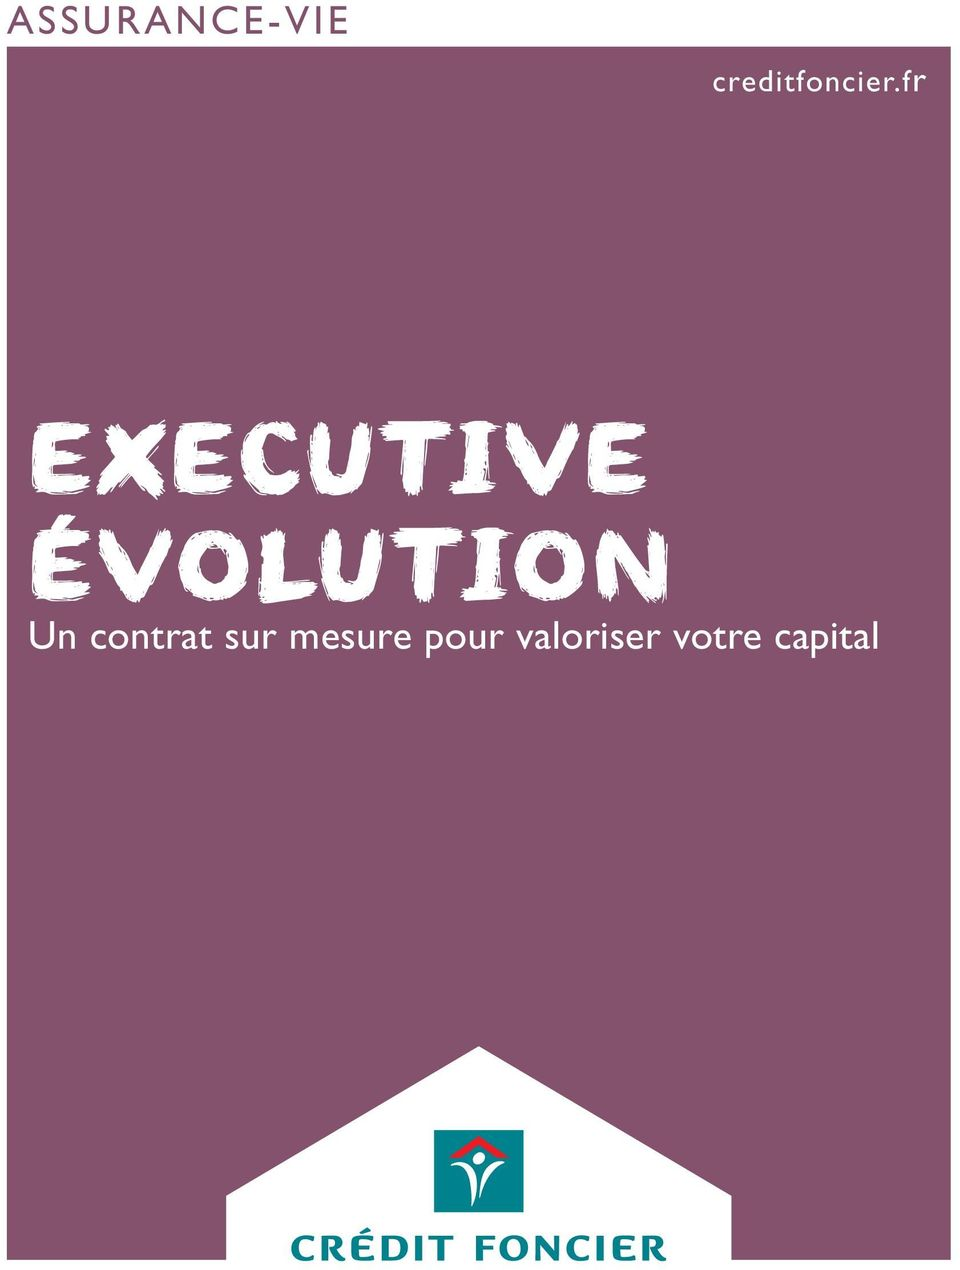 fr EXECUTIVE ÉVOLUTION Un